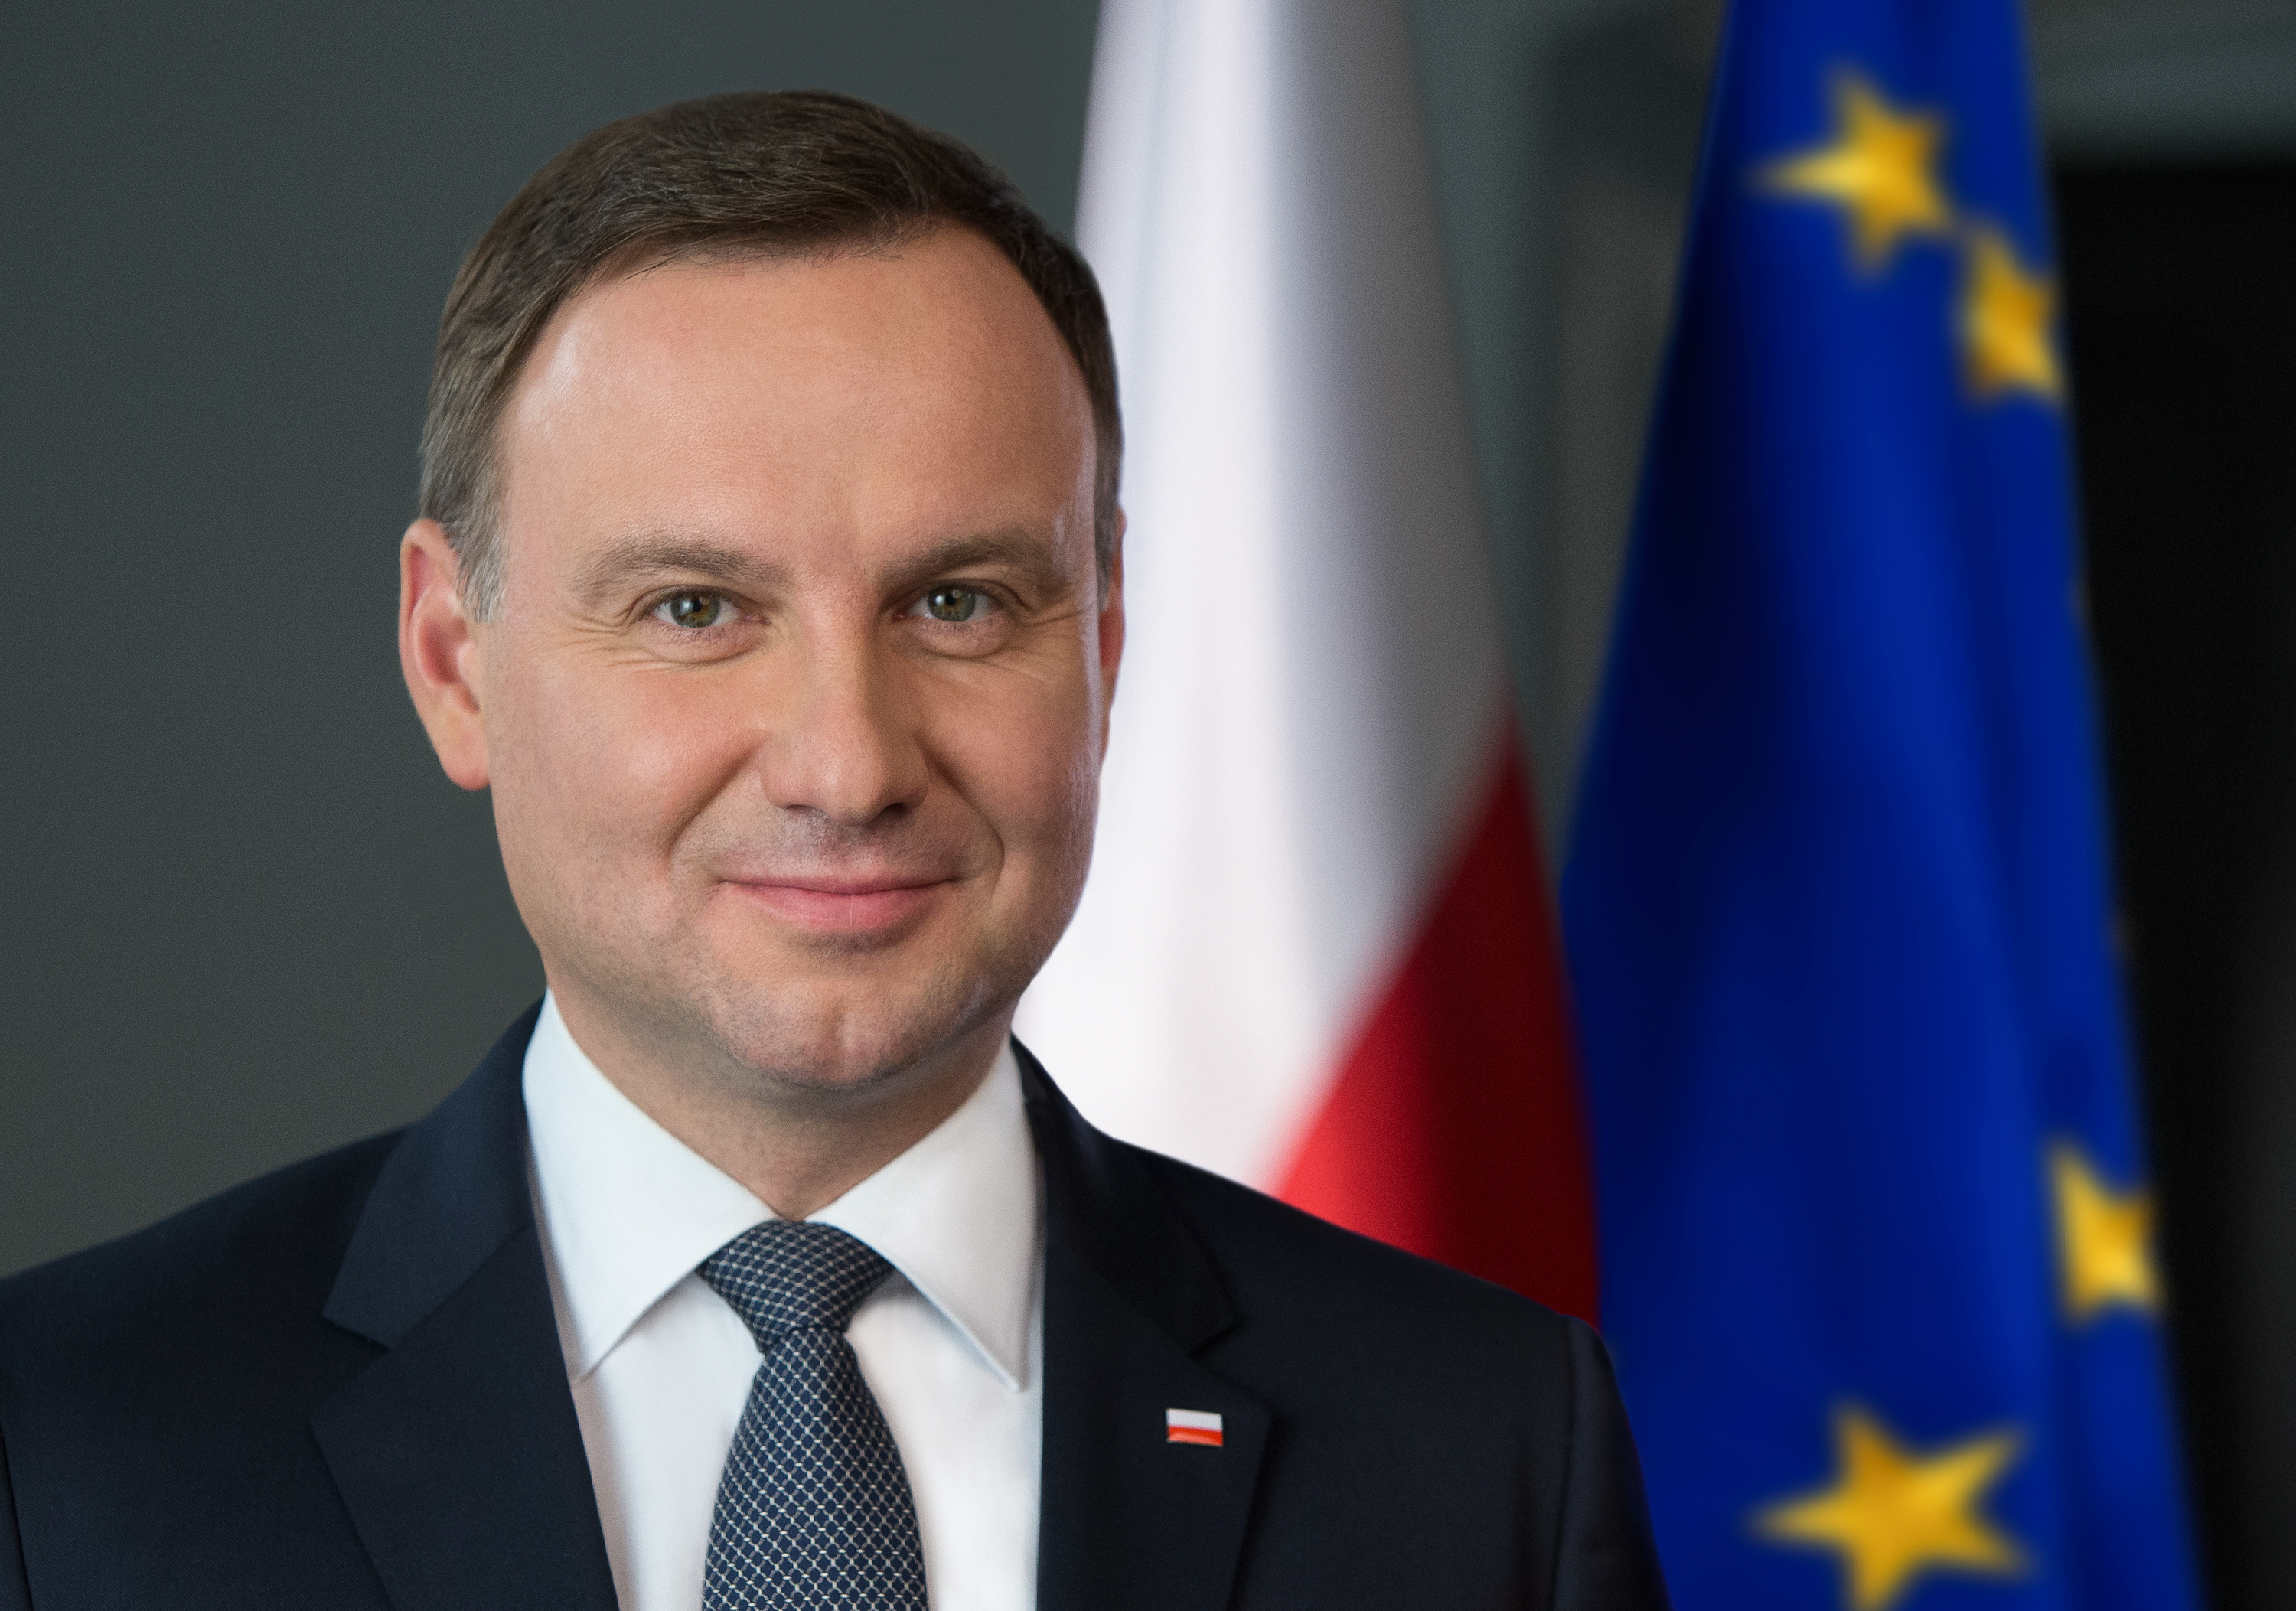 Andrzej Duda [Website of the President of Poland]